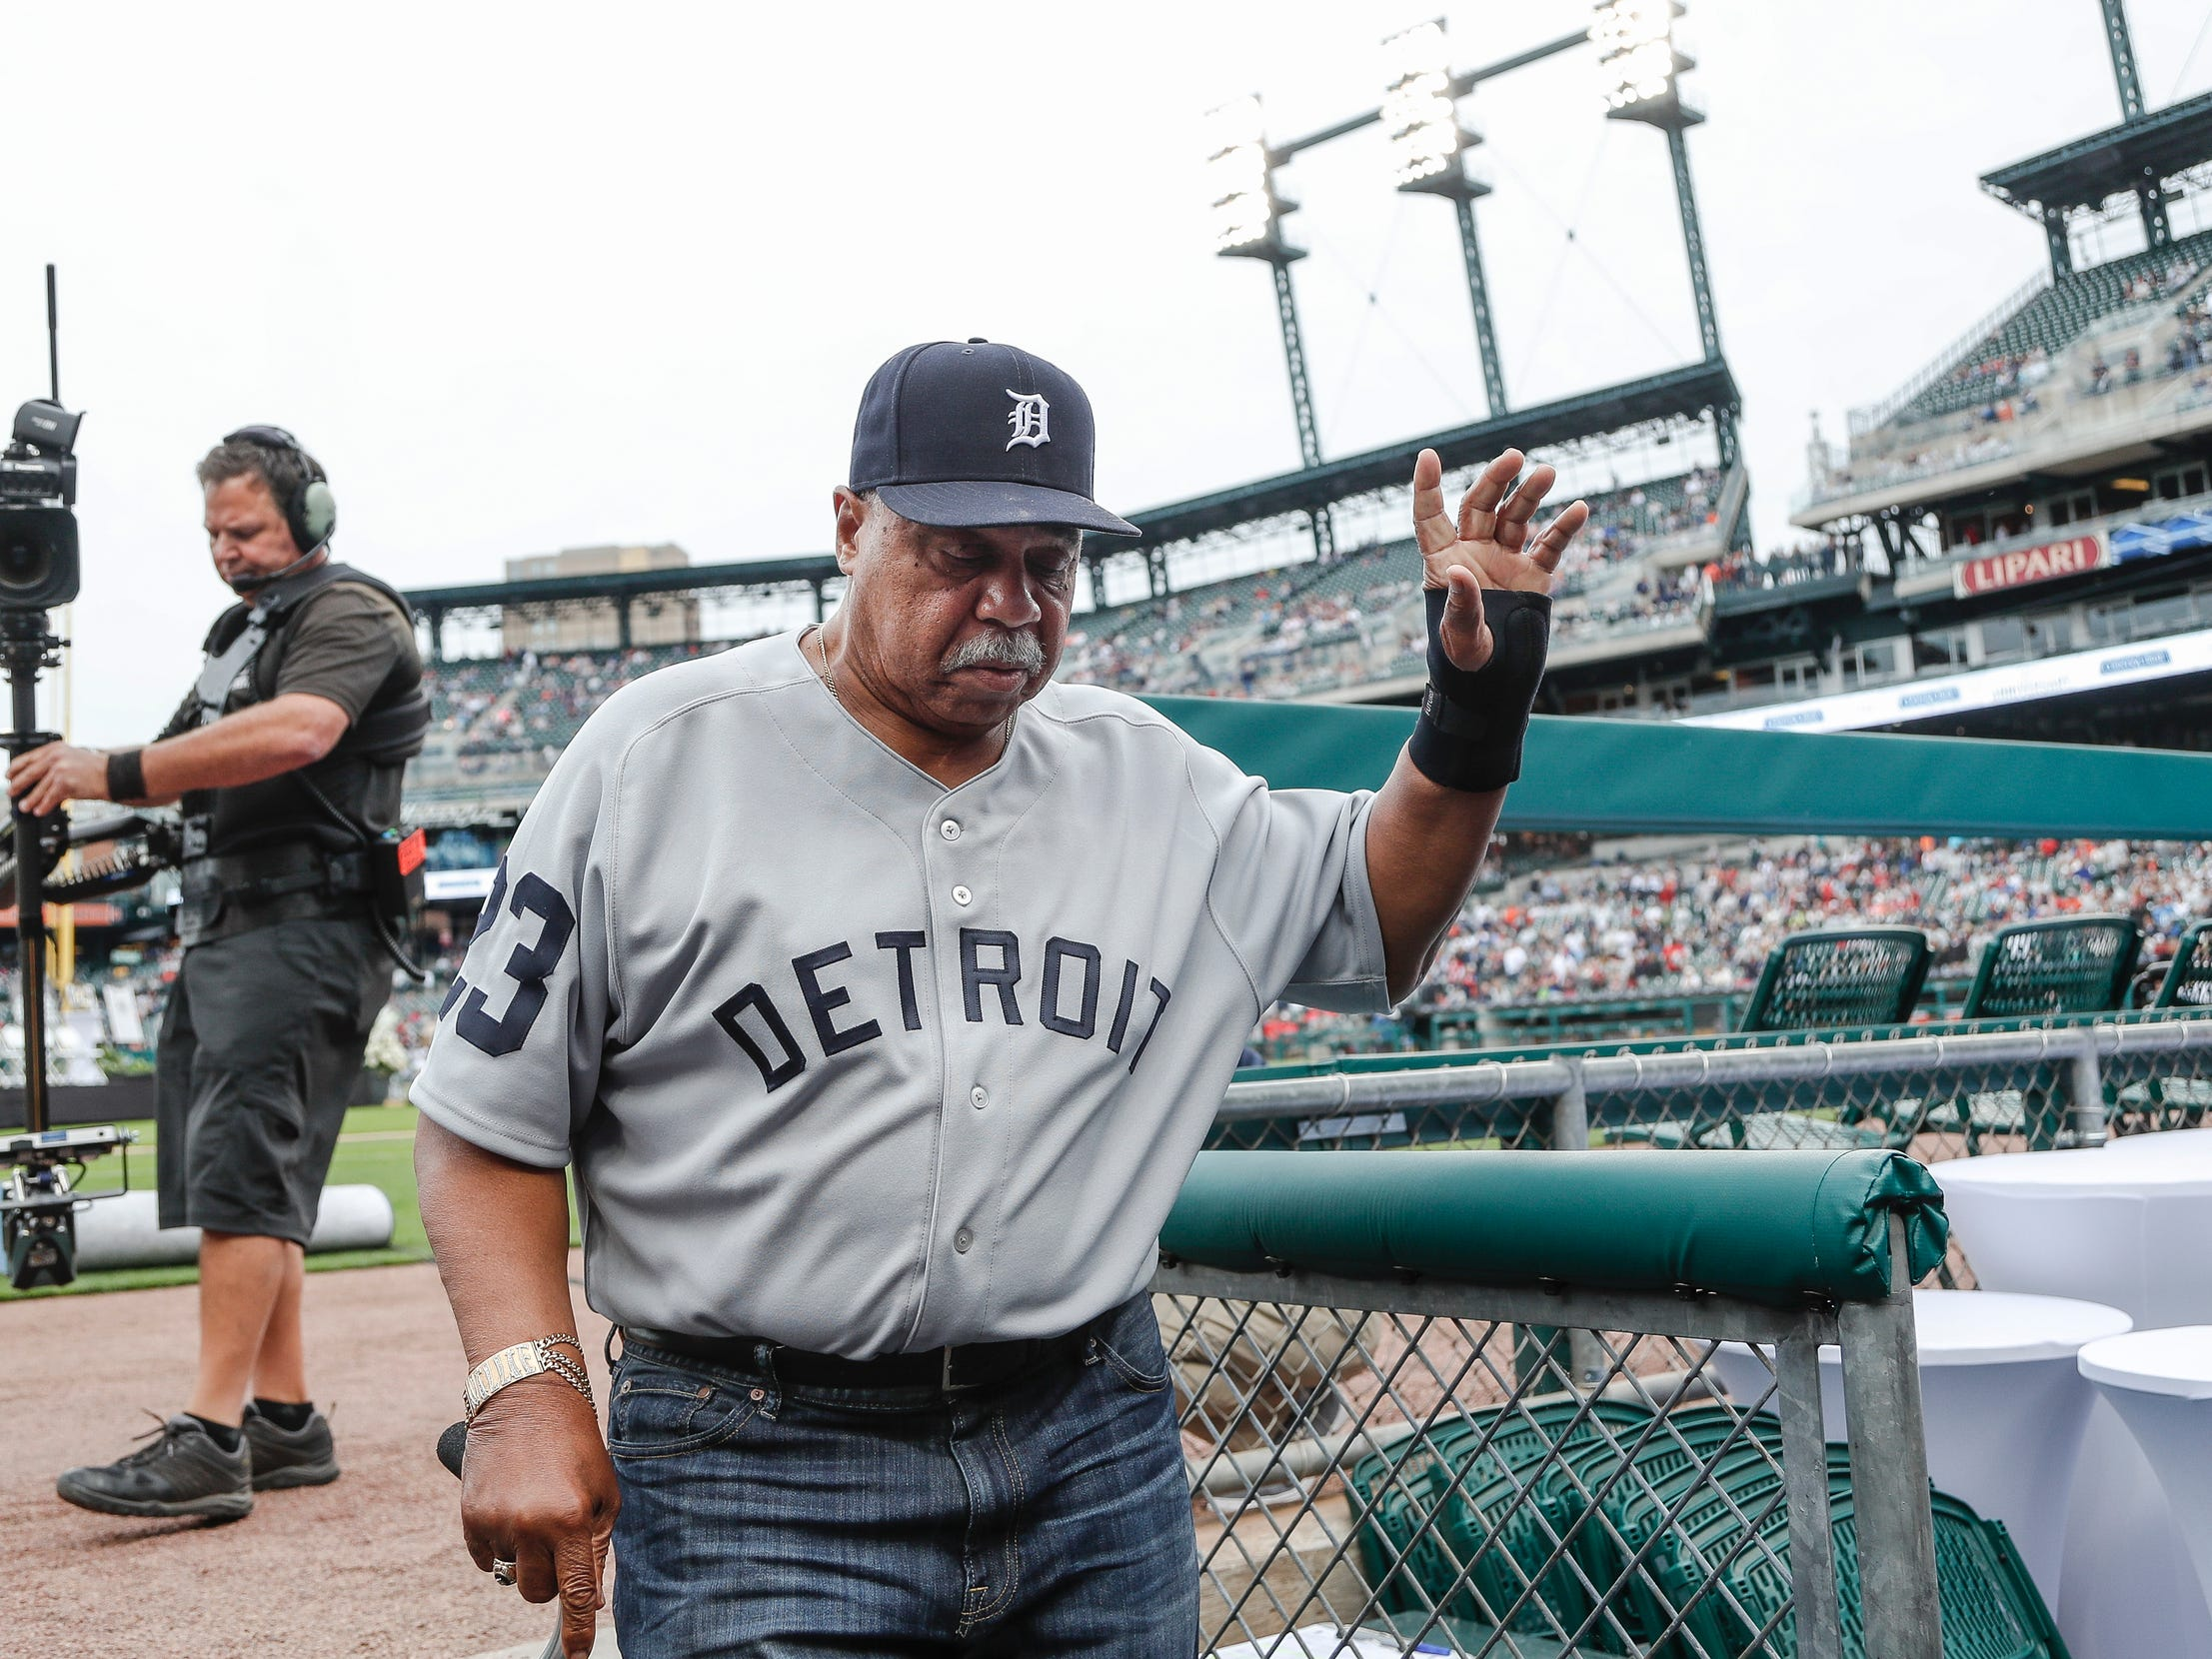 Former Detroit Tigers outfielder Willie Horton waves at the crowd as he walks to the dugout during the celebration of the 50th anniversary of 1968 World Series championship at Comerica Park in Detroit, Saturday, Sept. 8, 2018.